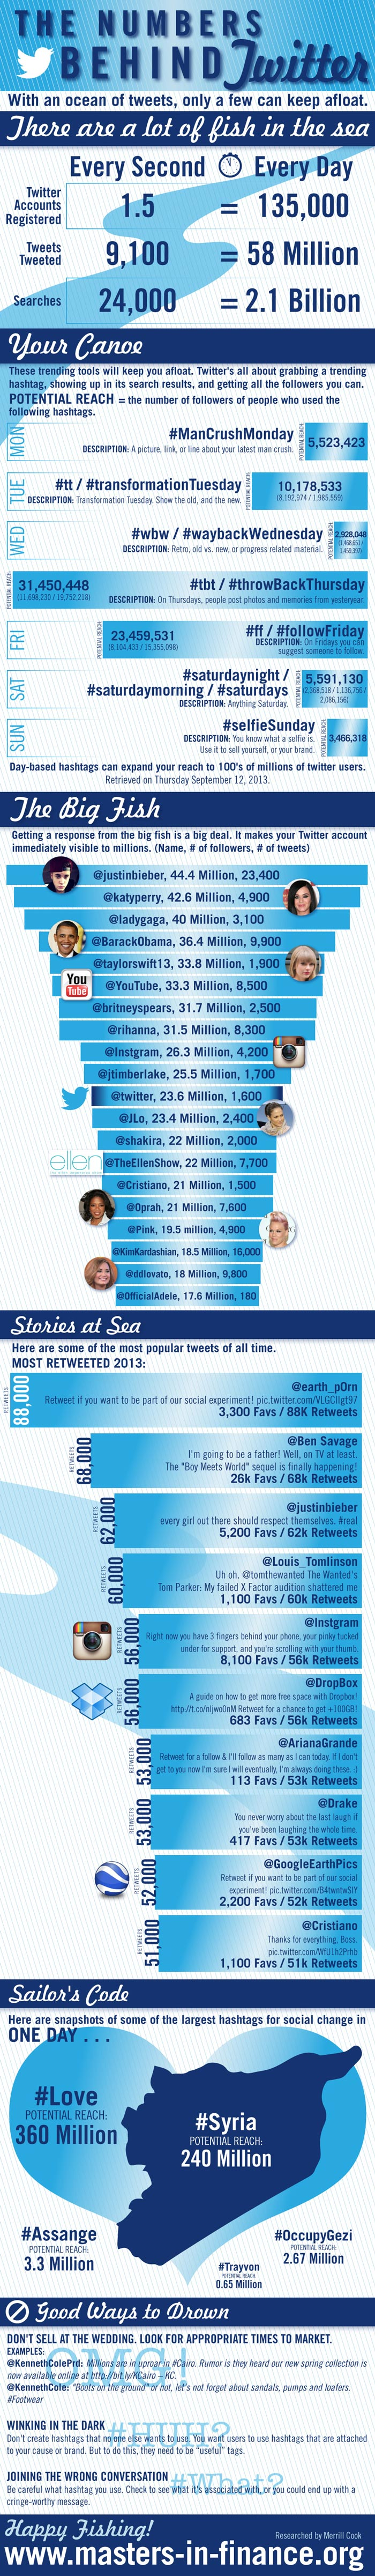 Fishing Twitter Followers-Infographic